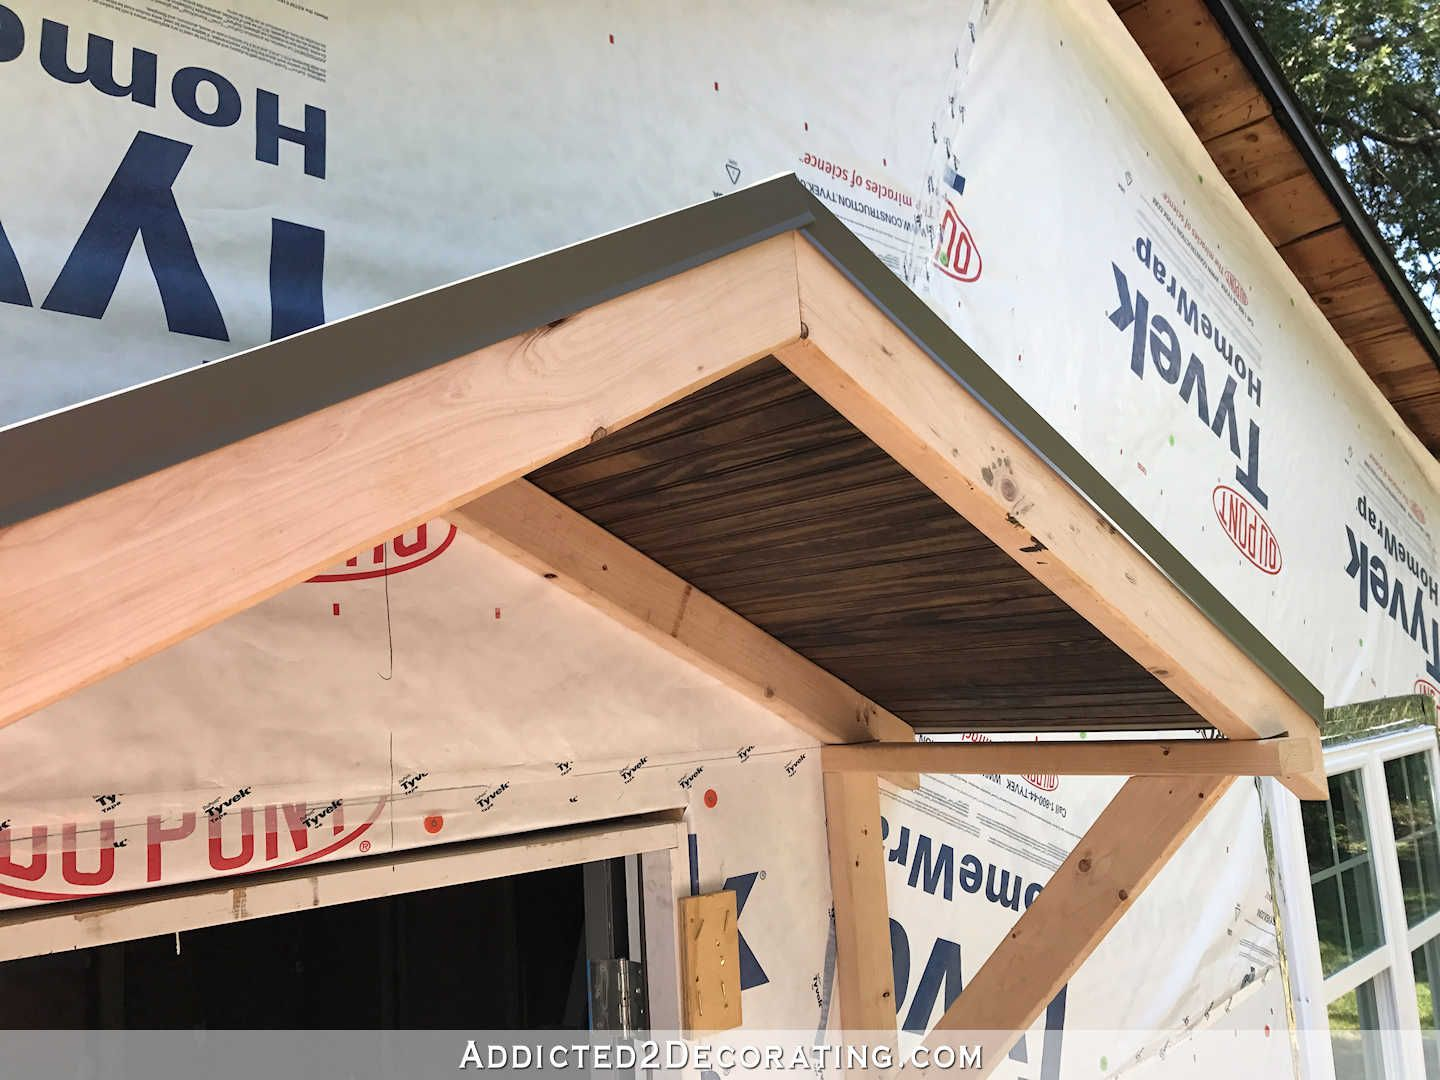 Diy Portico Part 2 Finishing The Ceiling The Roof Addicted 2 Decorating Portico Diy Awning Diy Front Porch